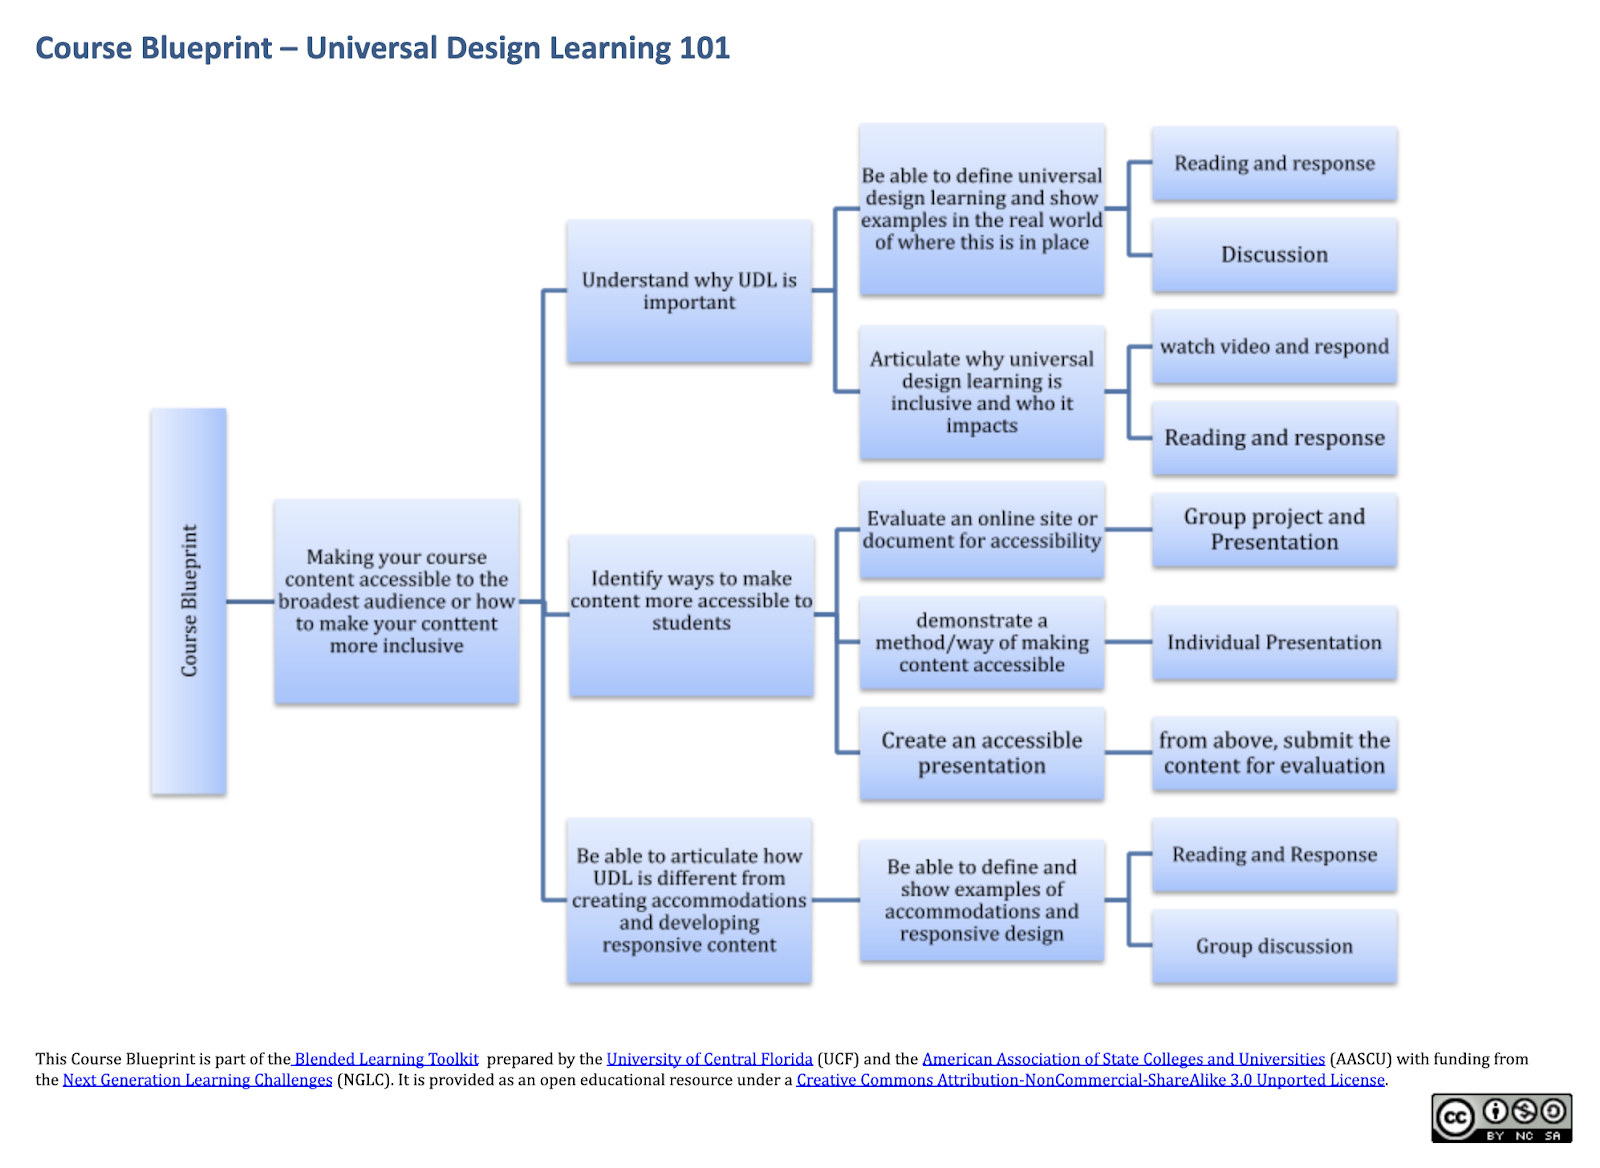 Course Blueprint from Educause with a variety of assessments and activities to learn about UDL.